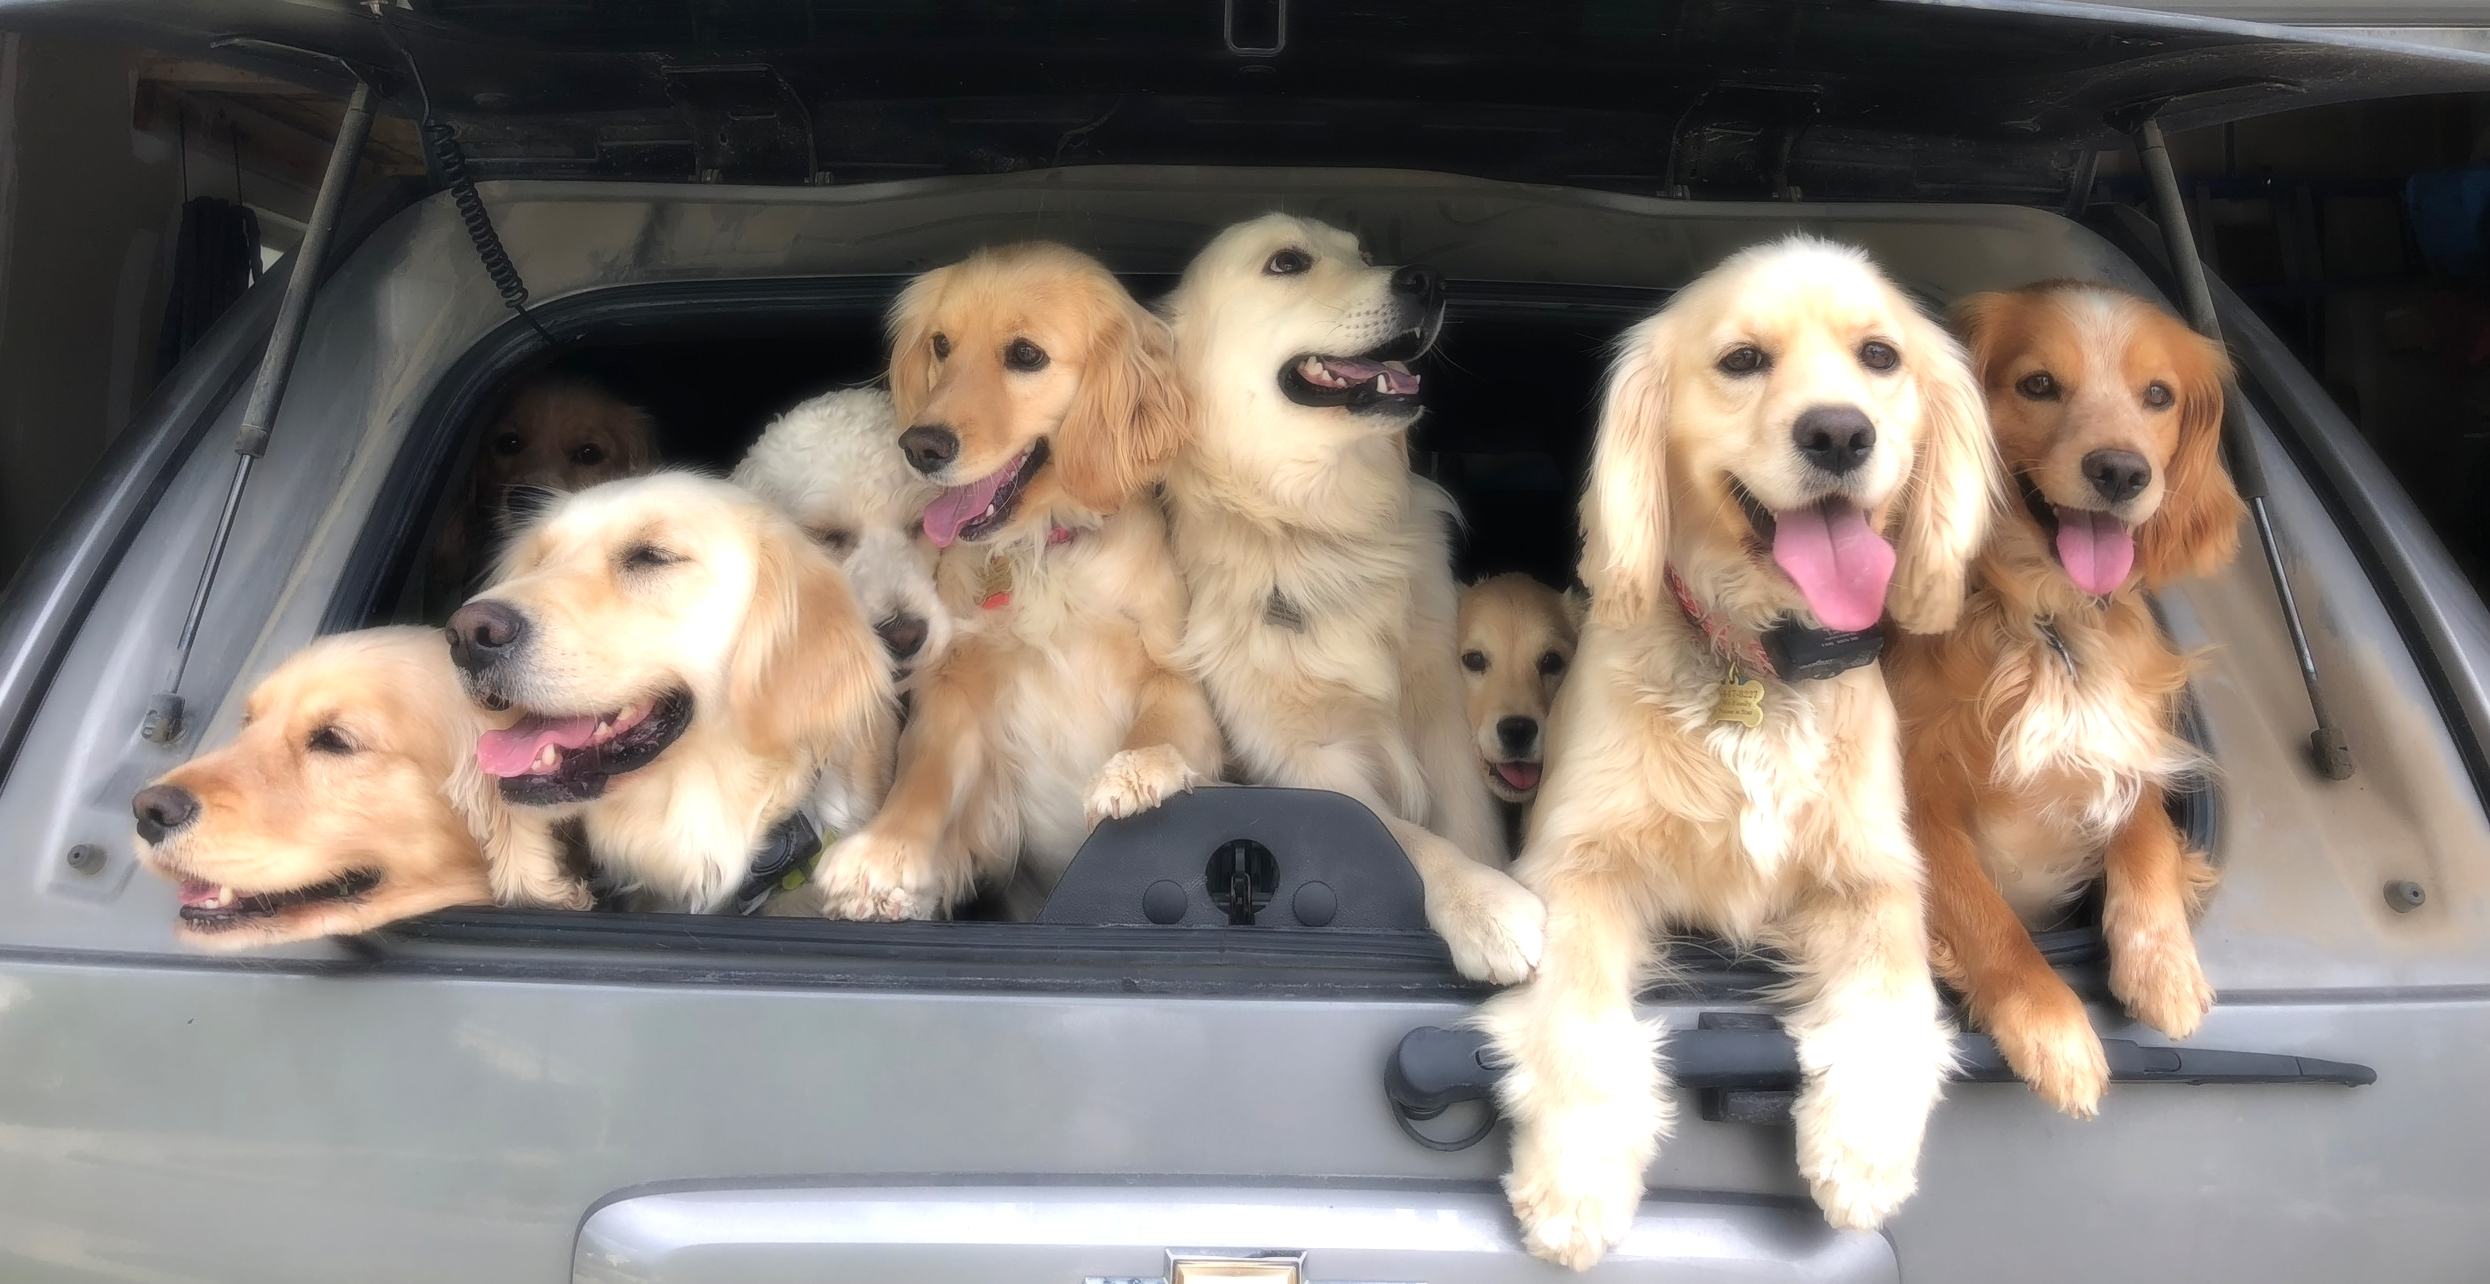 Here are our dogs ready for their next outing!